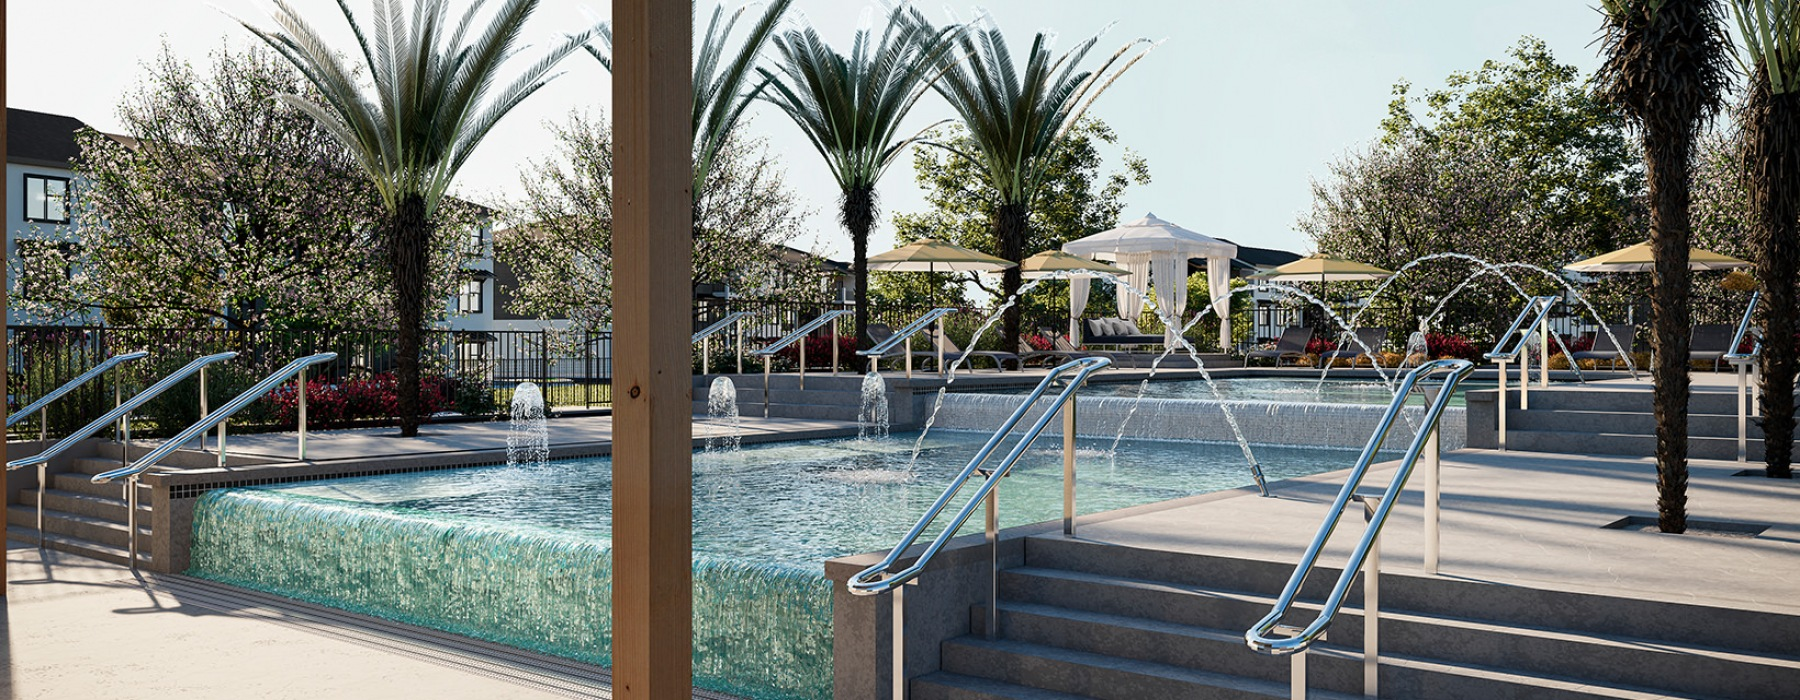 Zero-Edge Multi-Level Pool With fountain & Tanning Shelves At Abacus Alamo Ranch Apartments In San Antonio, TX